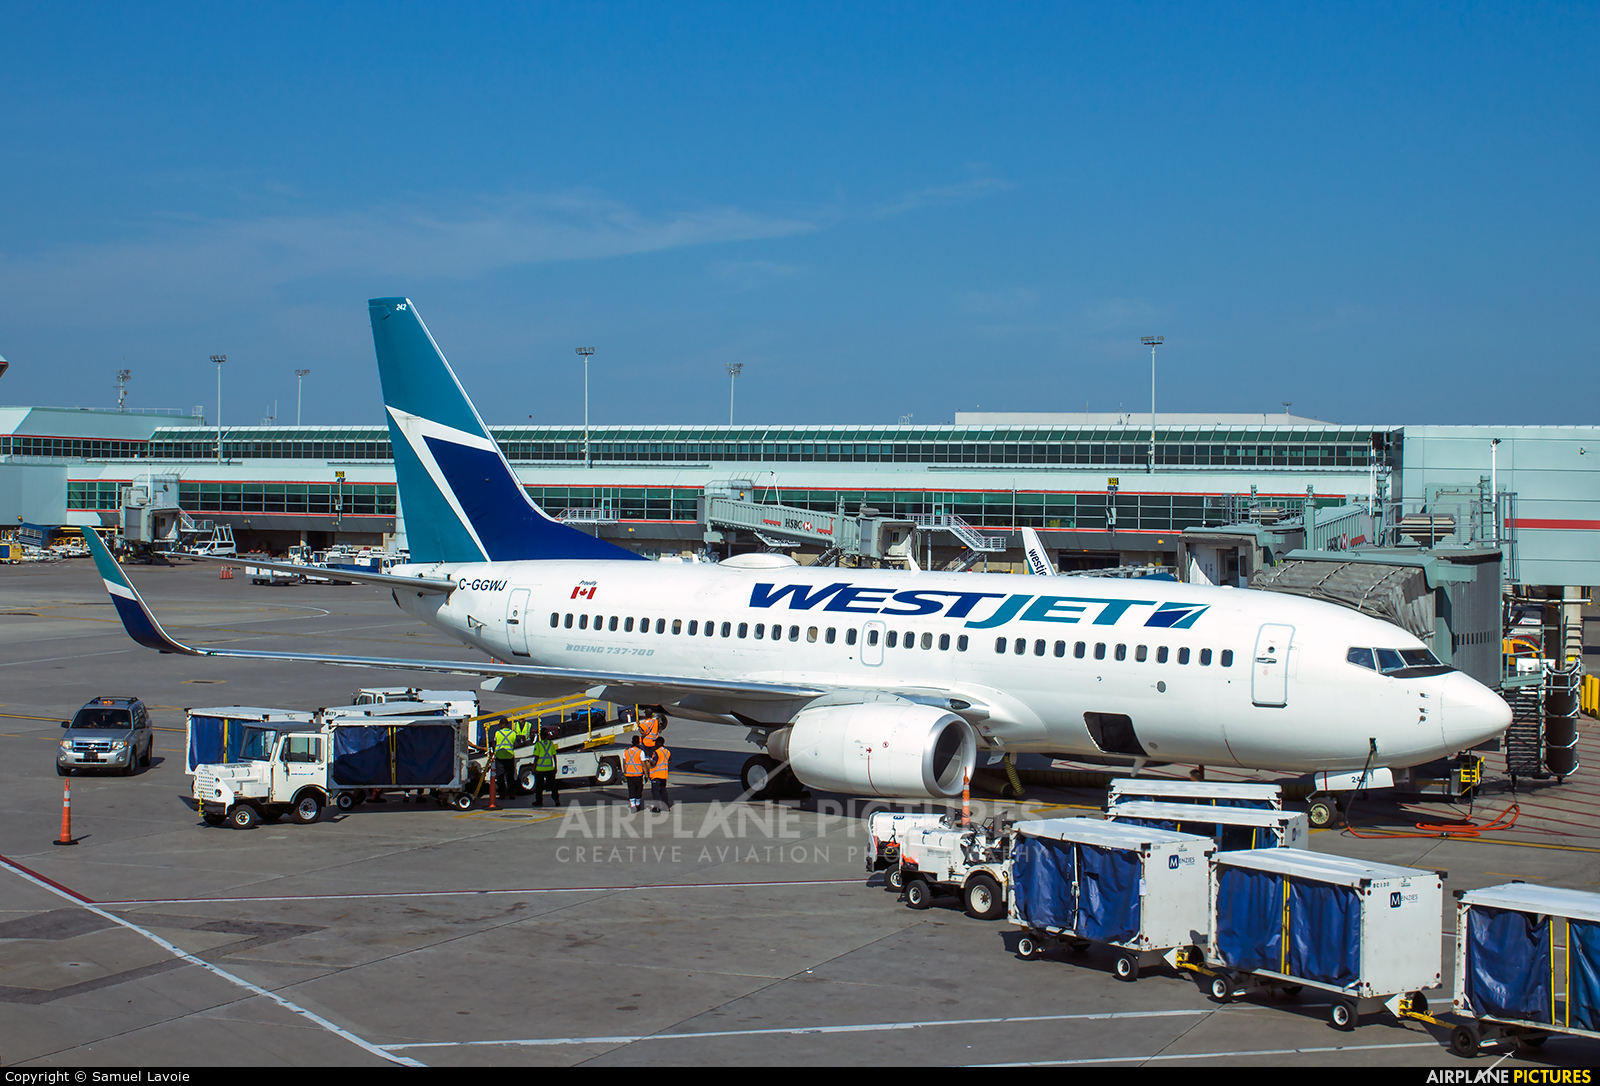 WestJet Airlines C-GGWJ aircraft at Toronto - Pearson Intl, ON